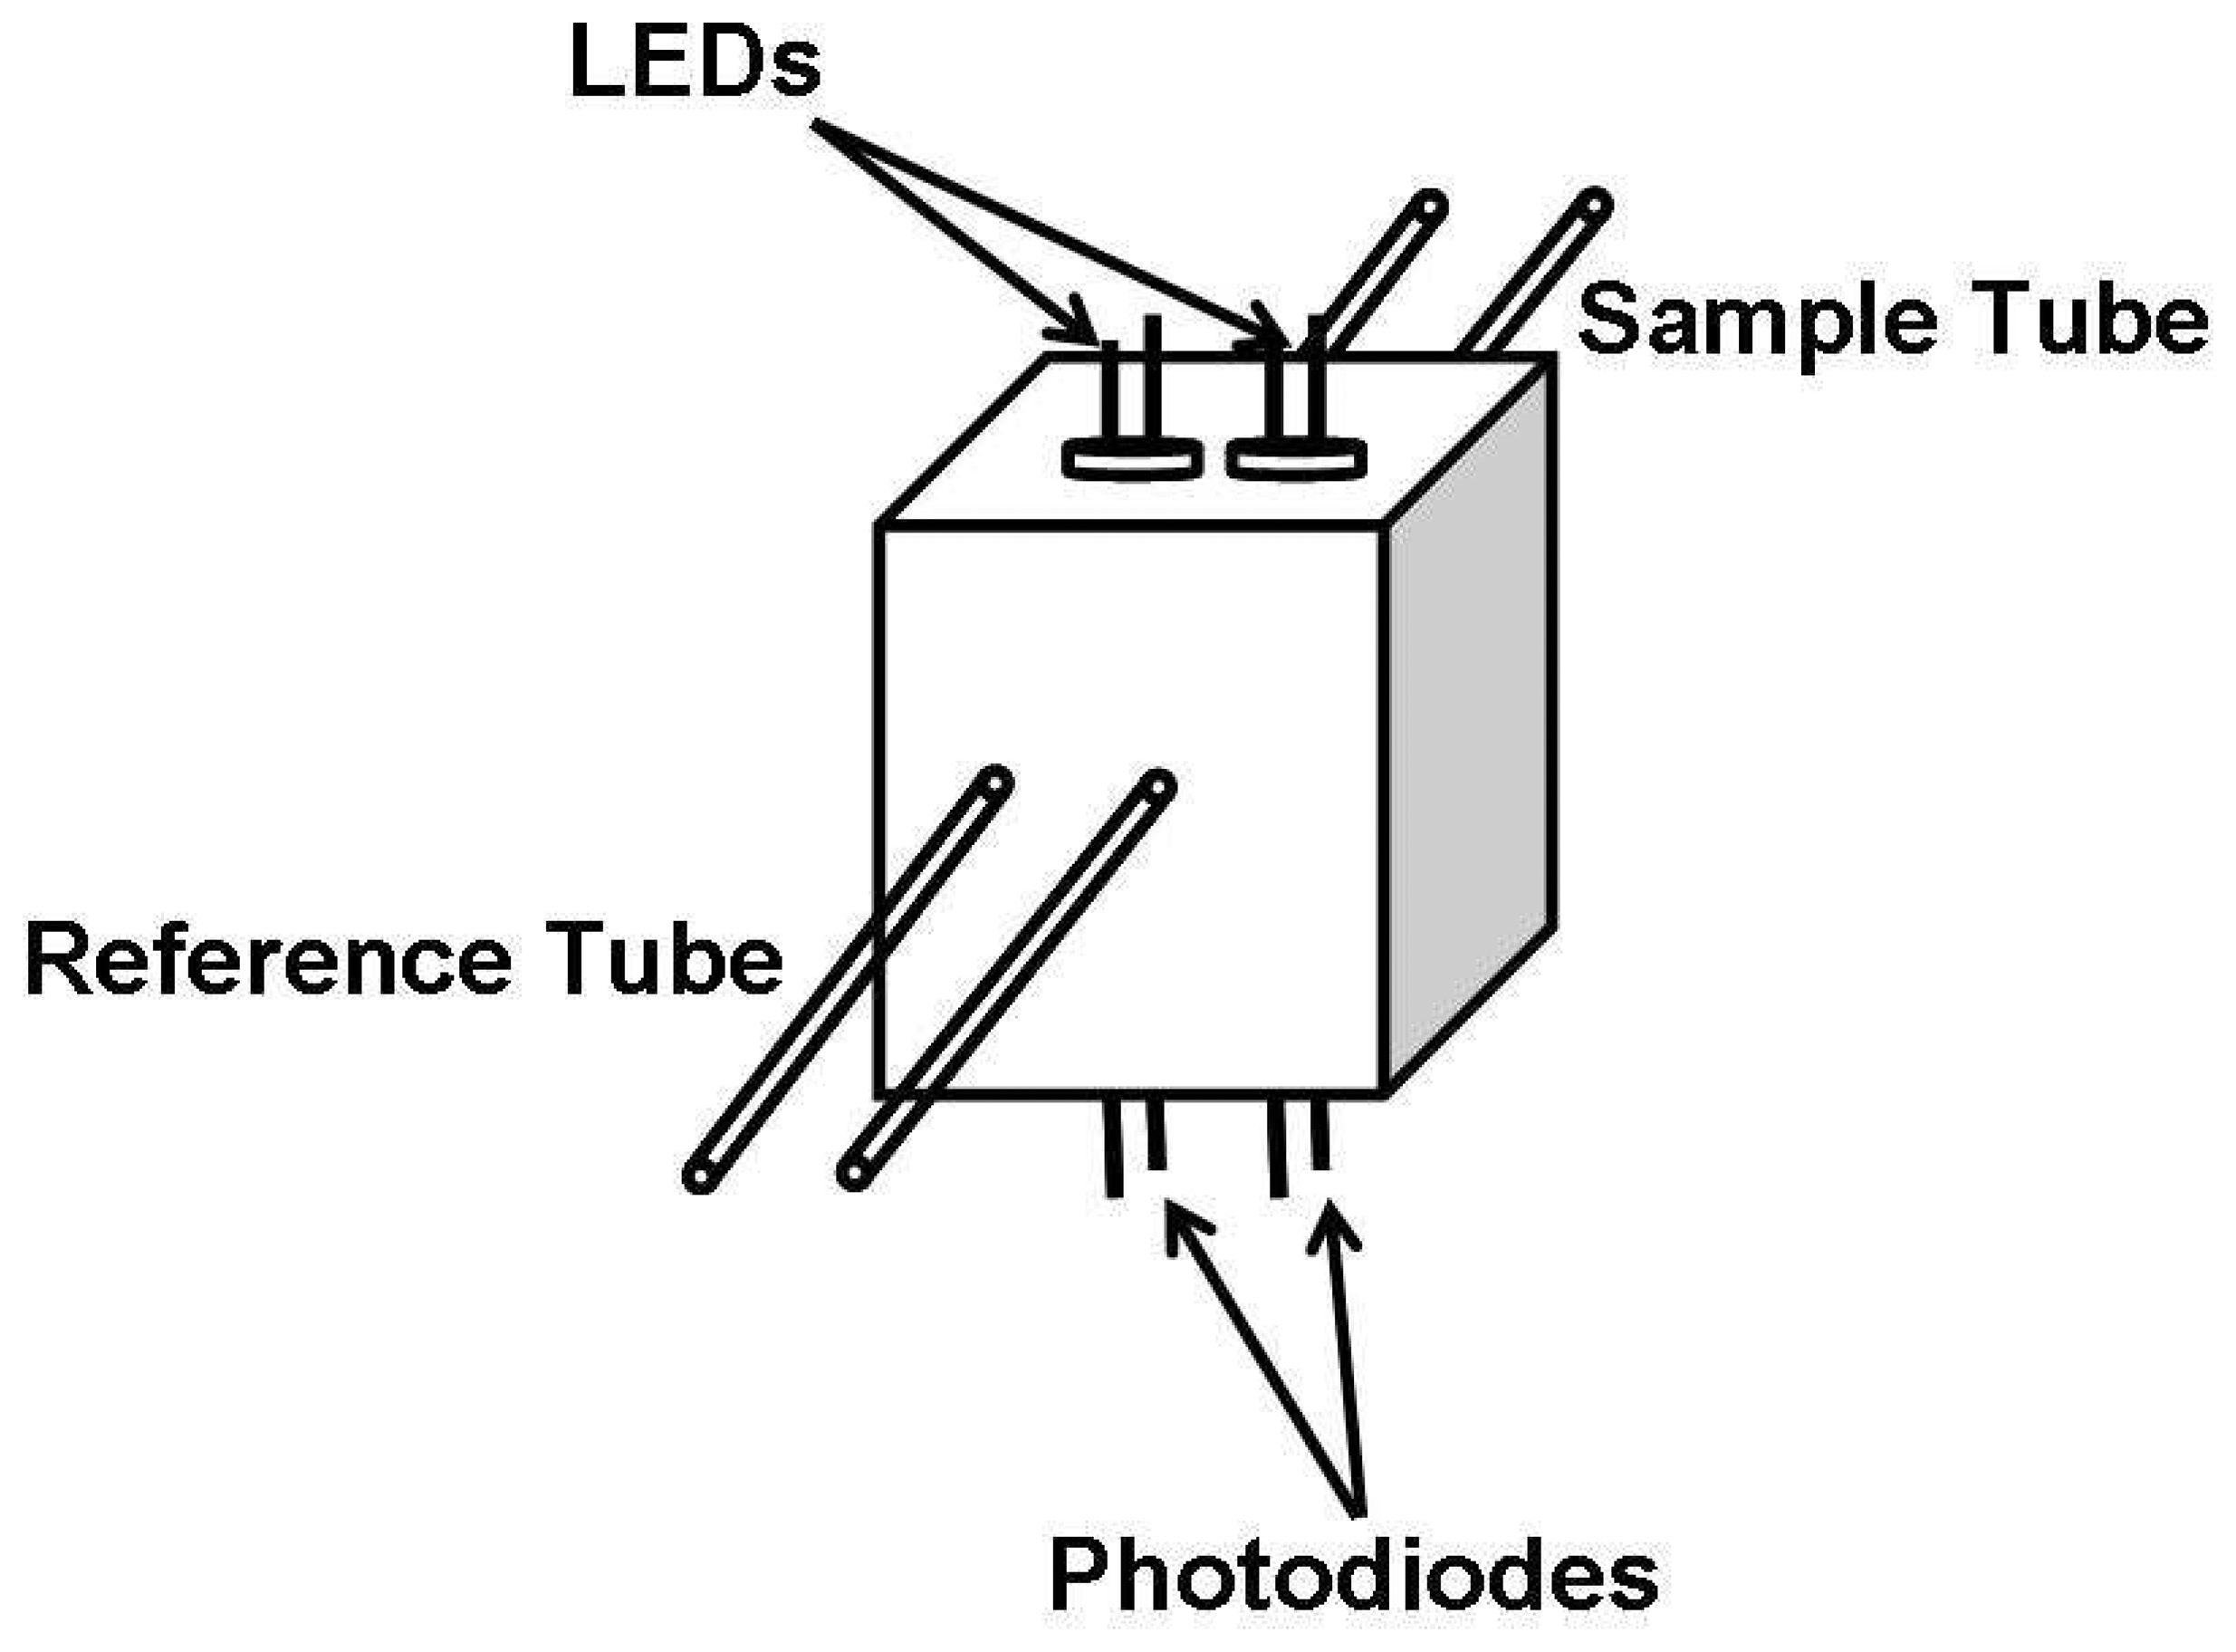 Sensors Free Full Text Absorbance Based Light Emitting Diode Led Organ Circuit Diagram Circuits Lab 08 02453f5 Figure 5 Schematic